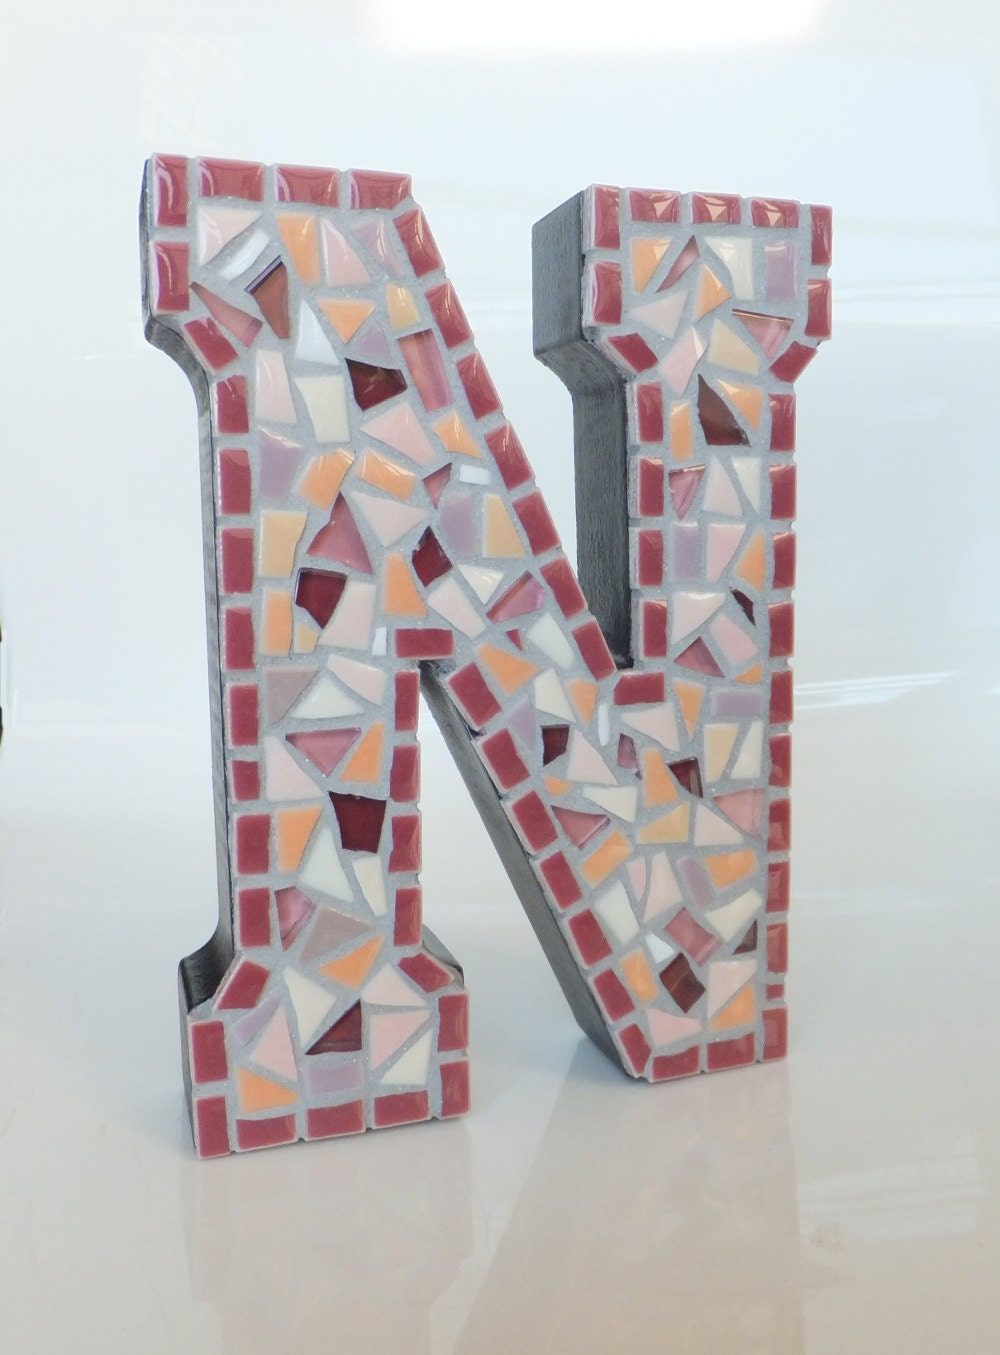 Letter n wall art 6 mosaic home decor by mollycatmosaics for Letter n decorations